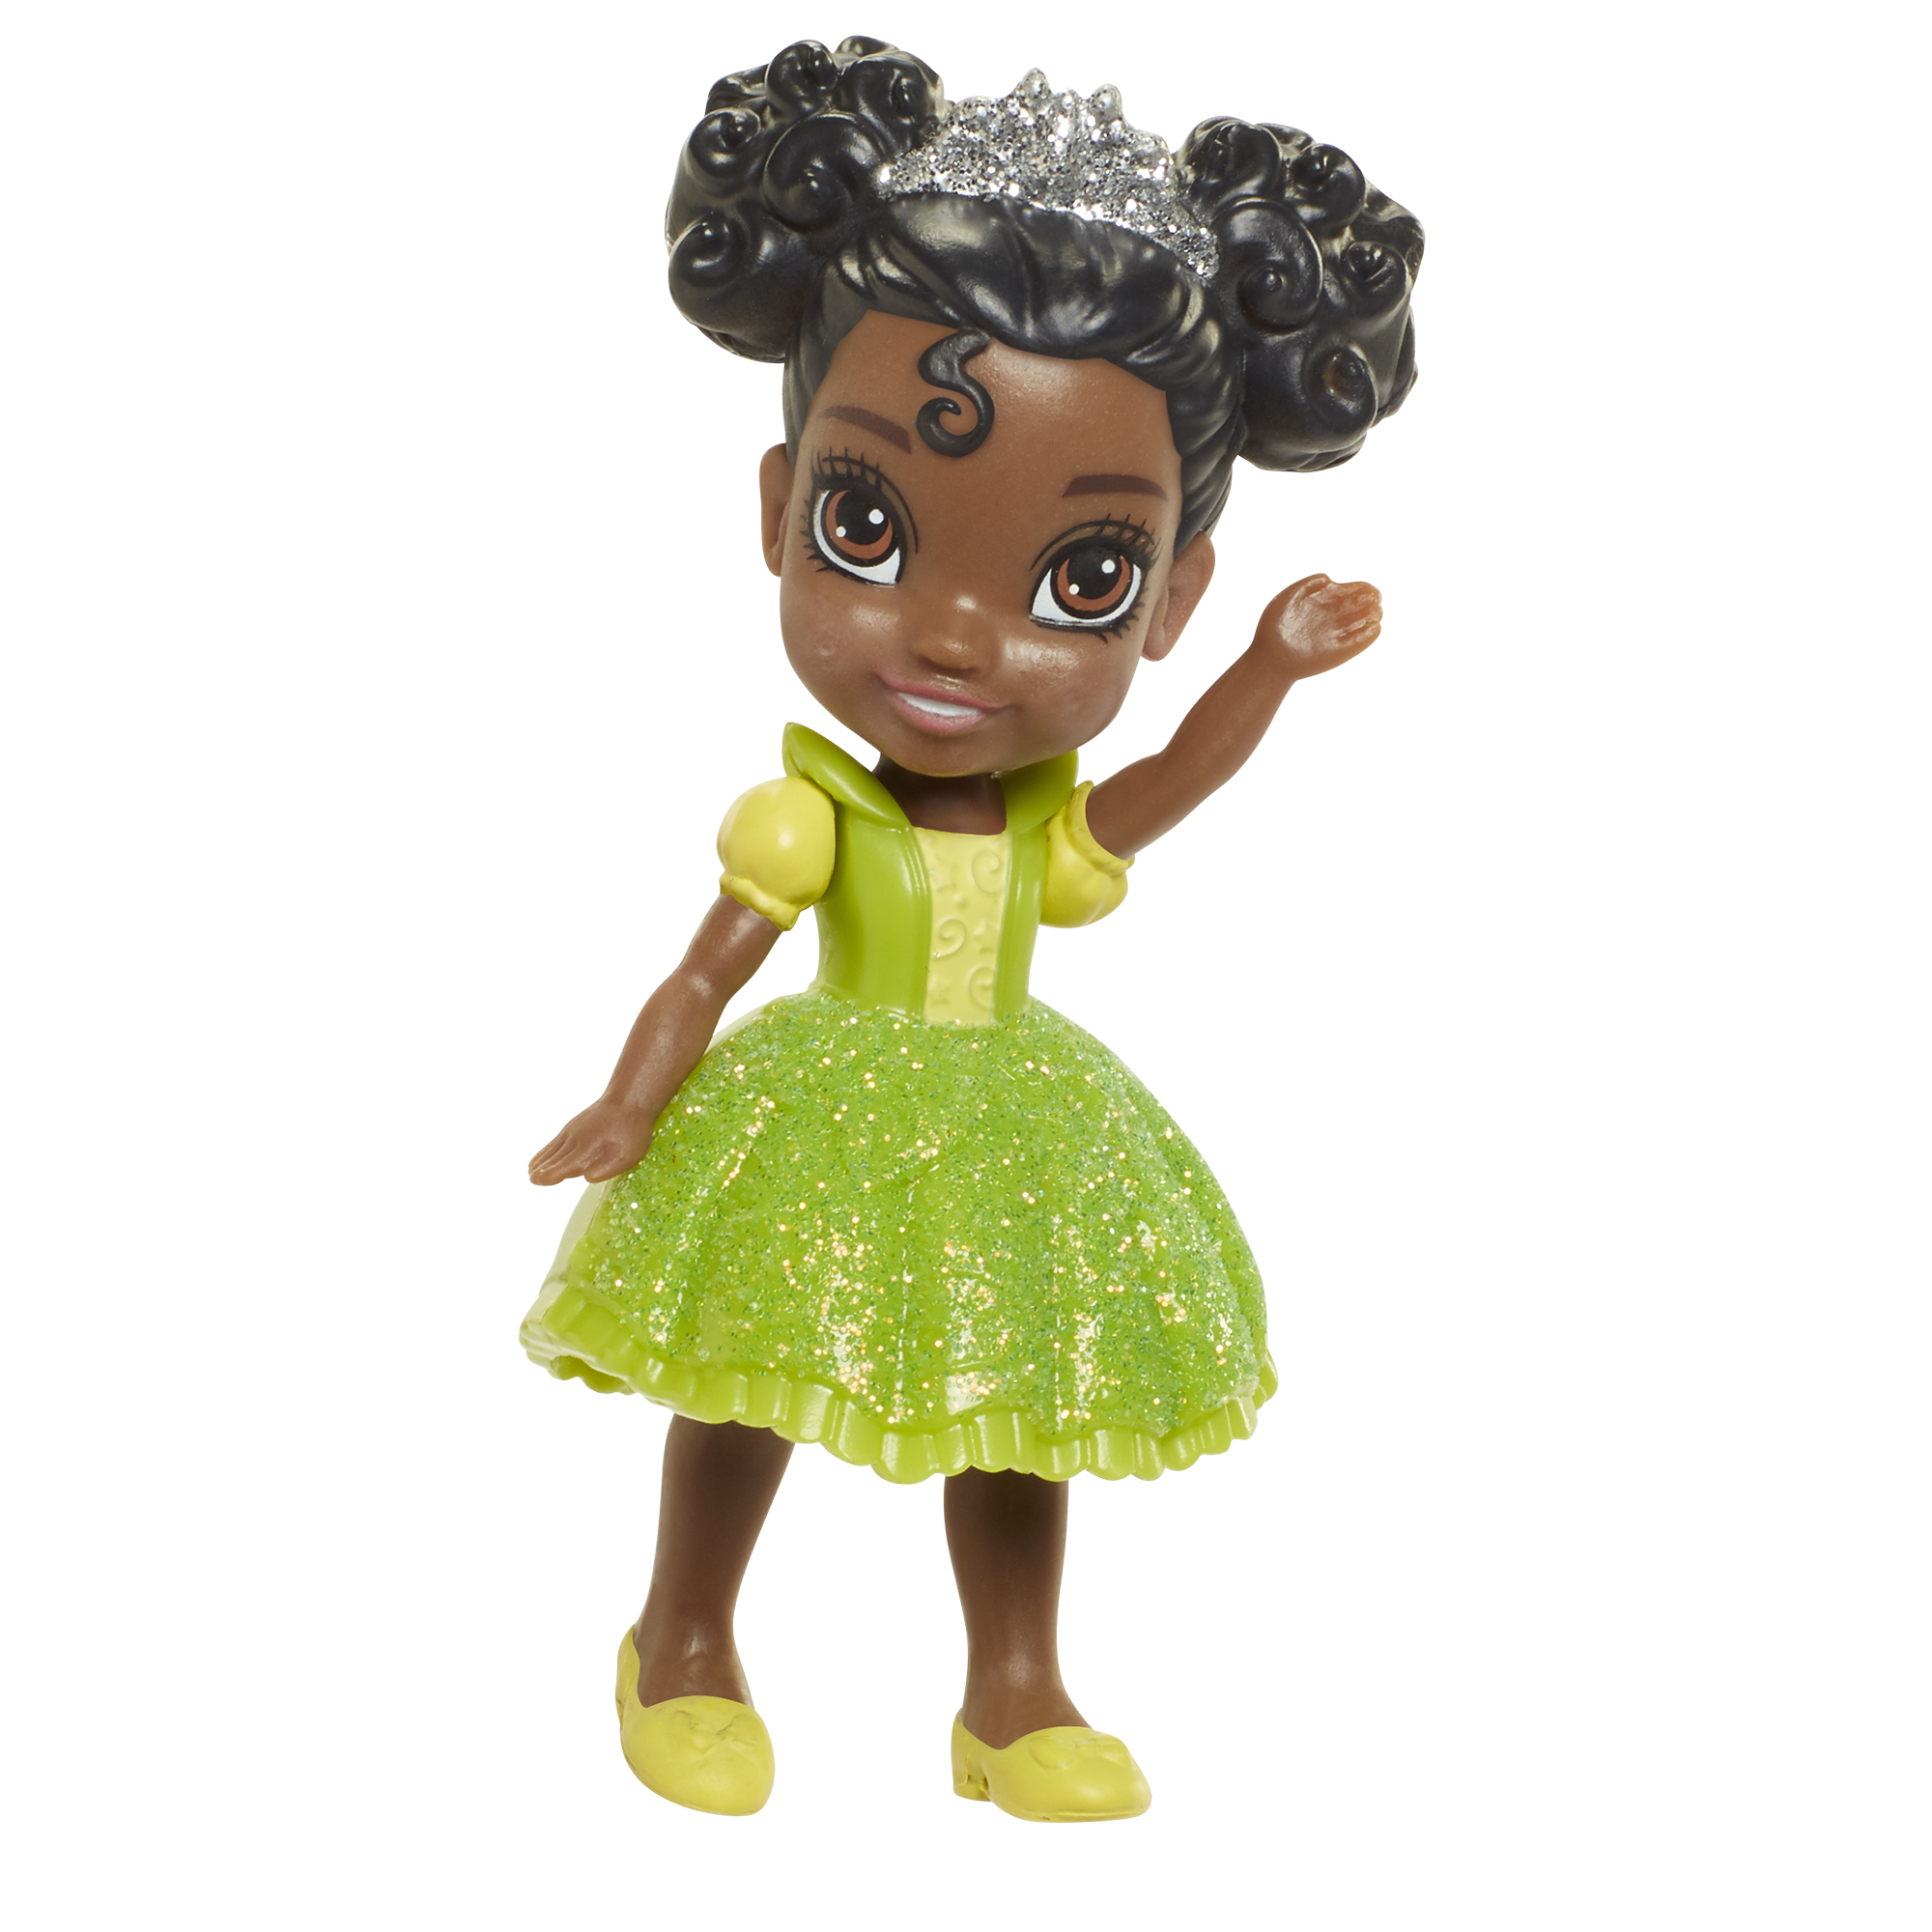 Tiana 3 inch Mini Doll Disney Princess